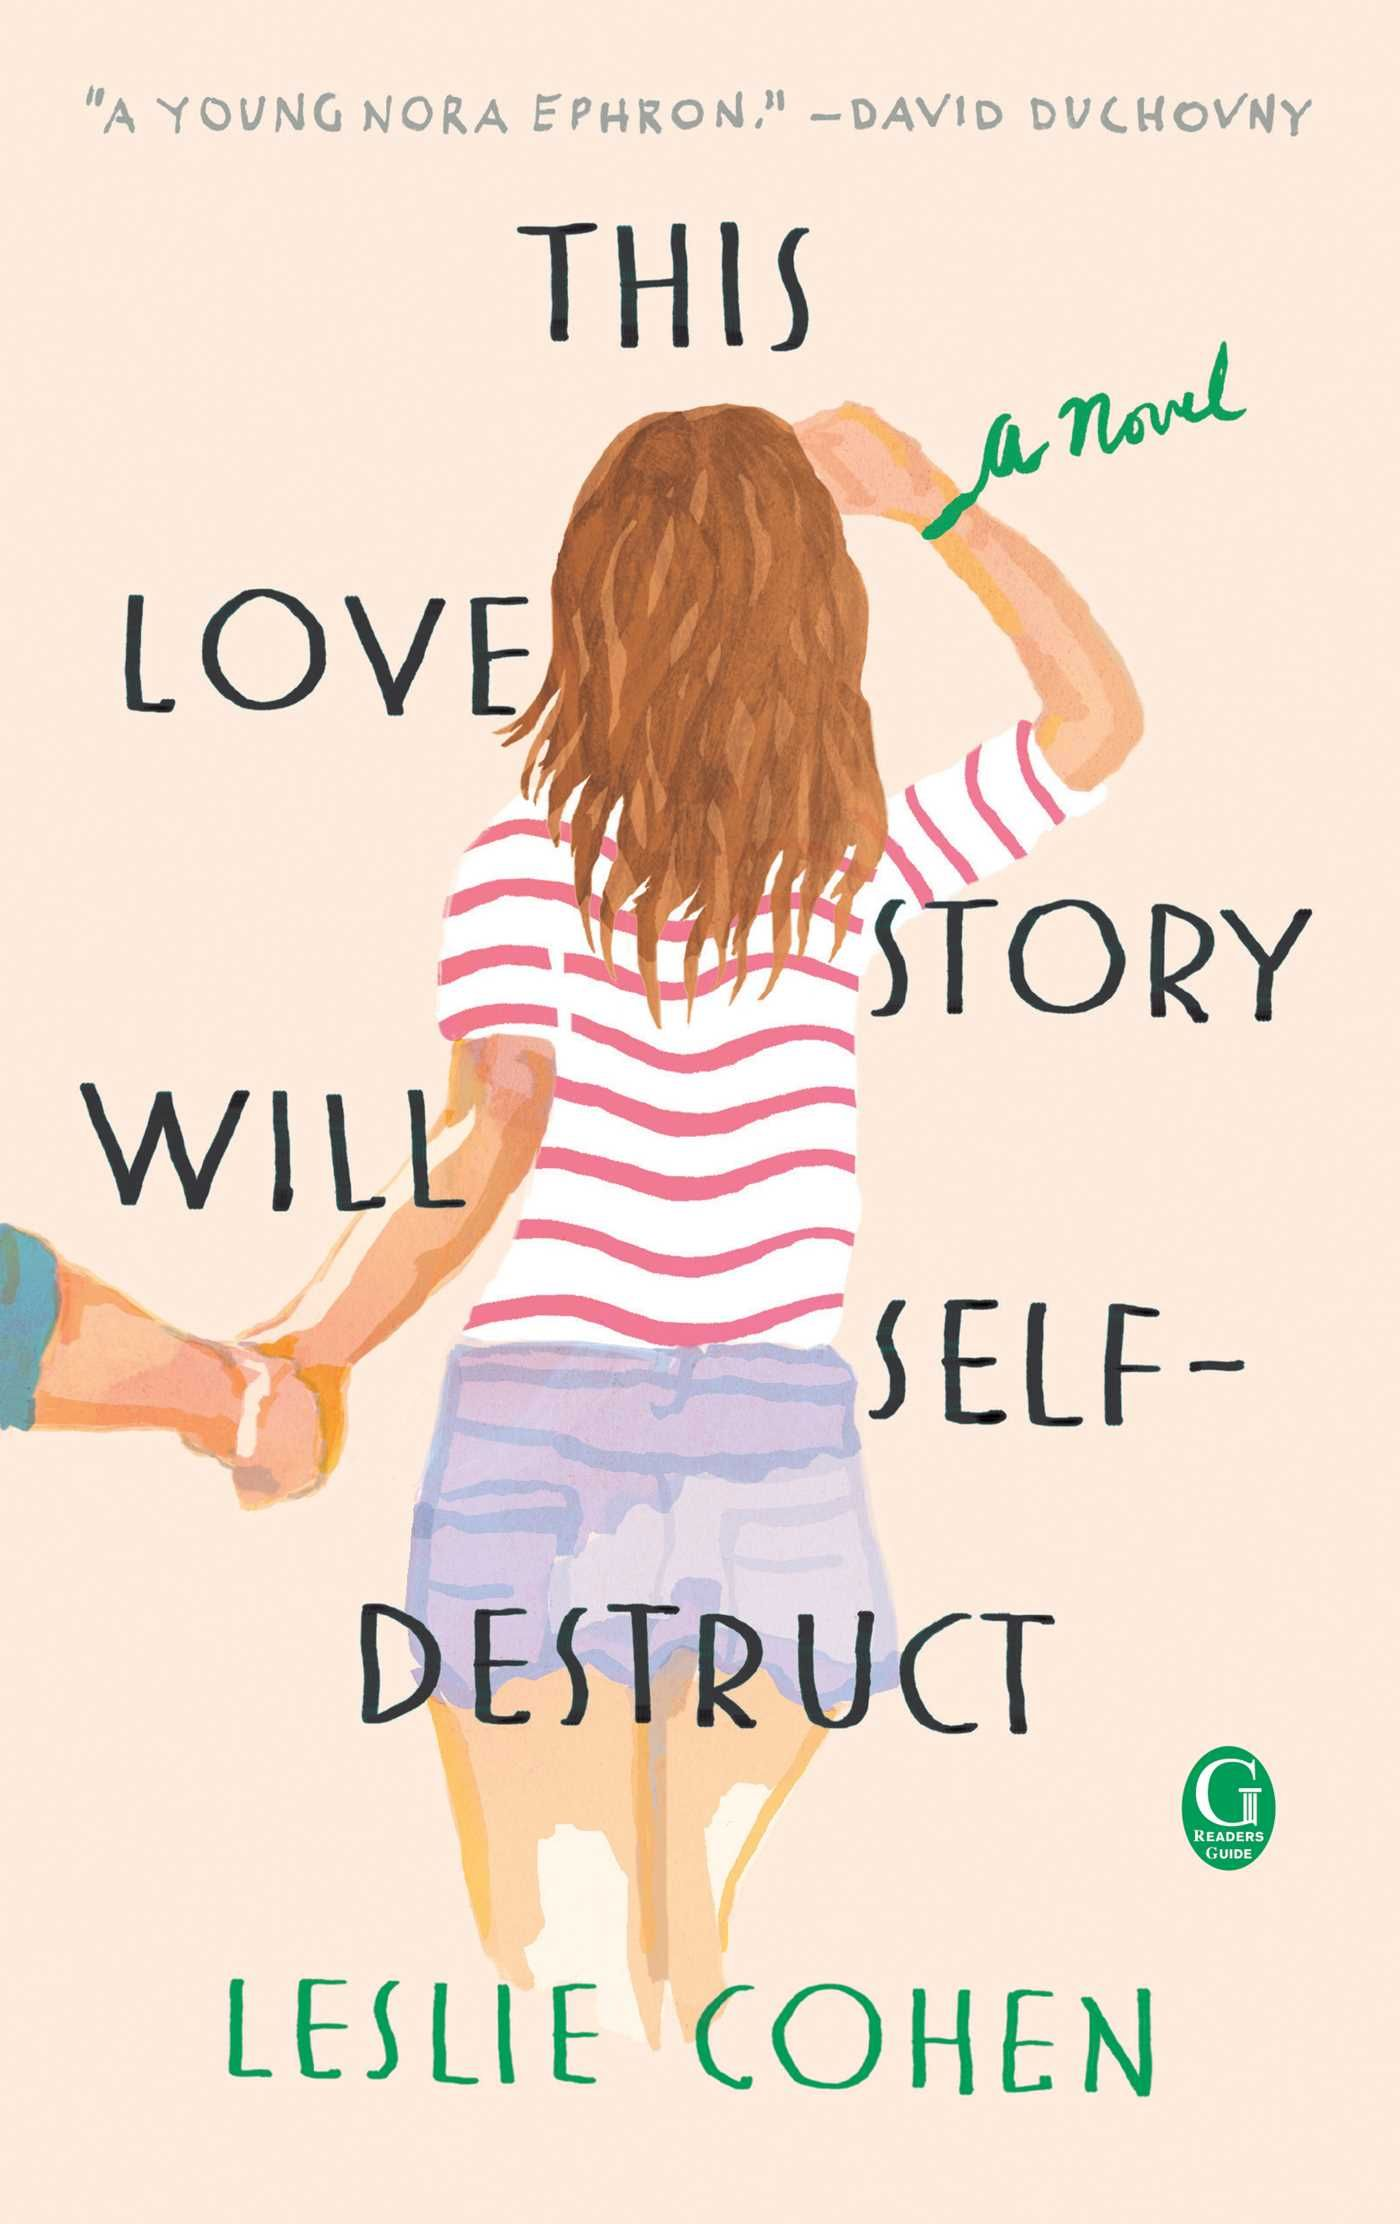 January 2018 Loan Stars Number 8 Top Pick This Love Story Will Self